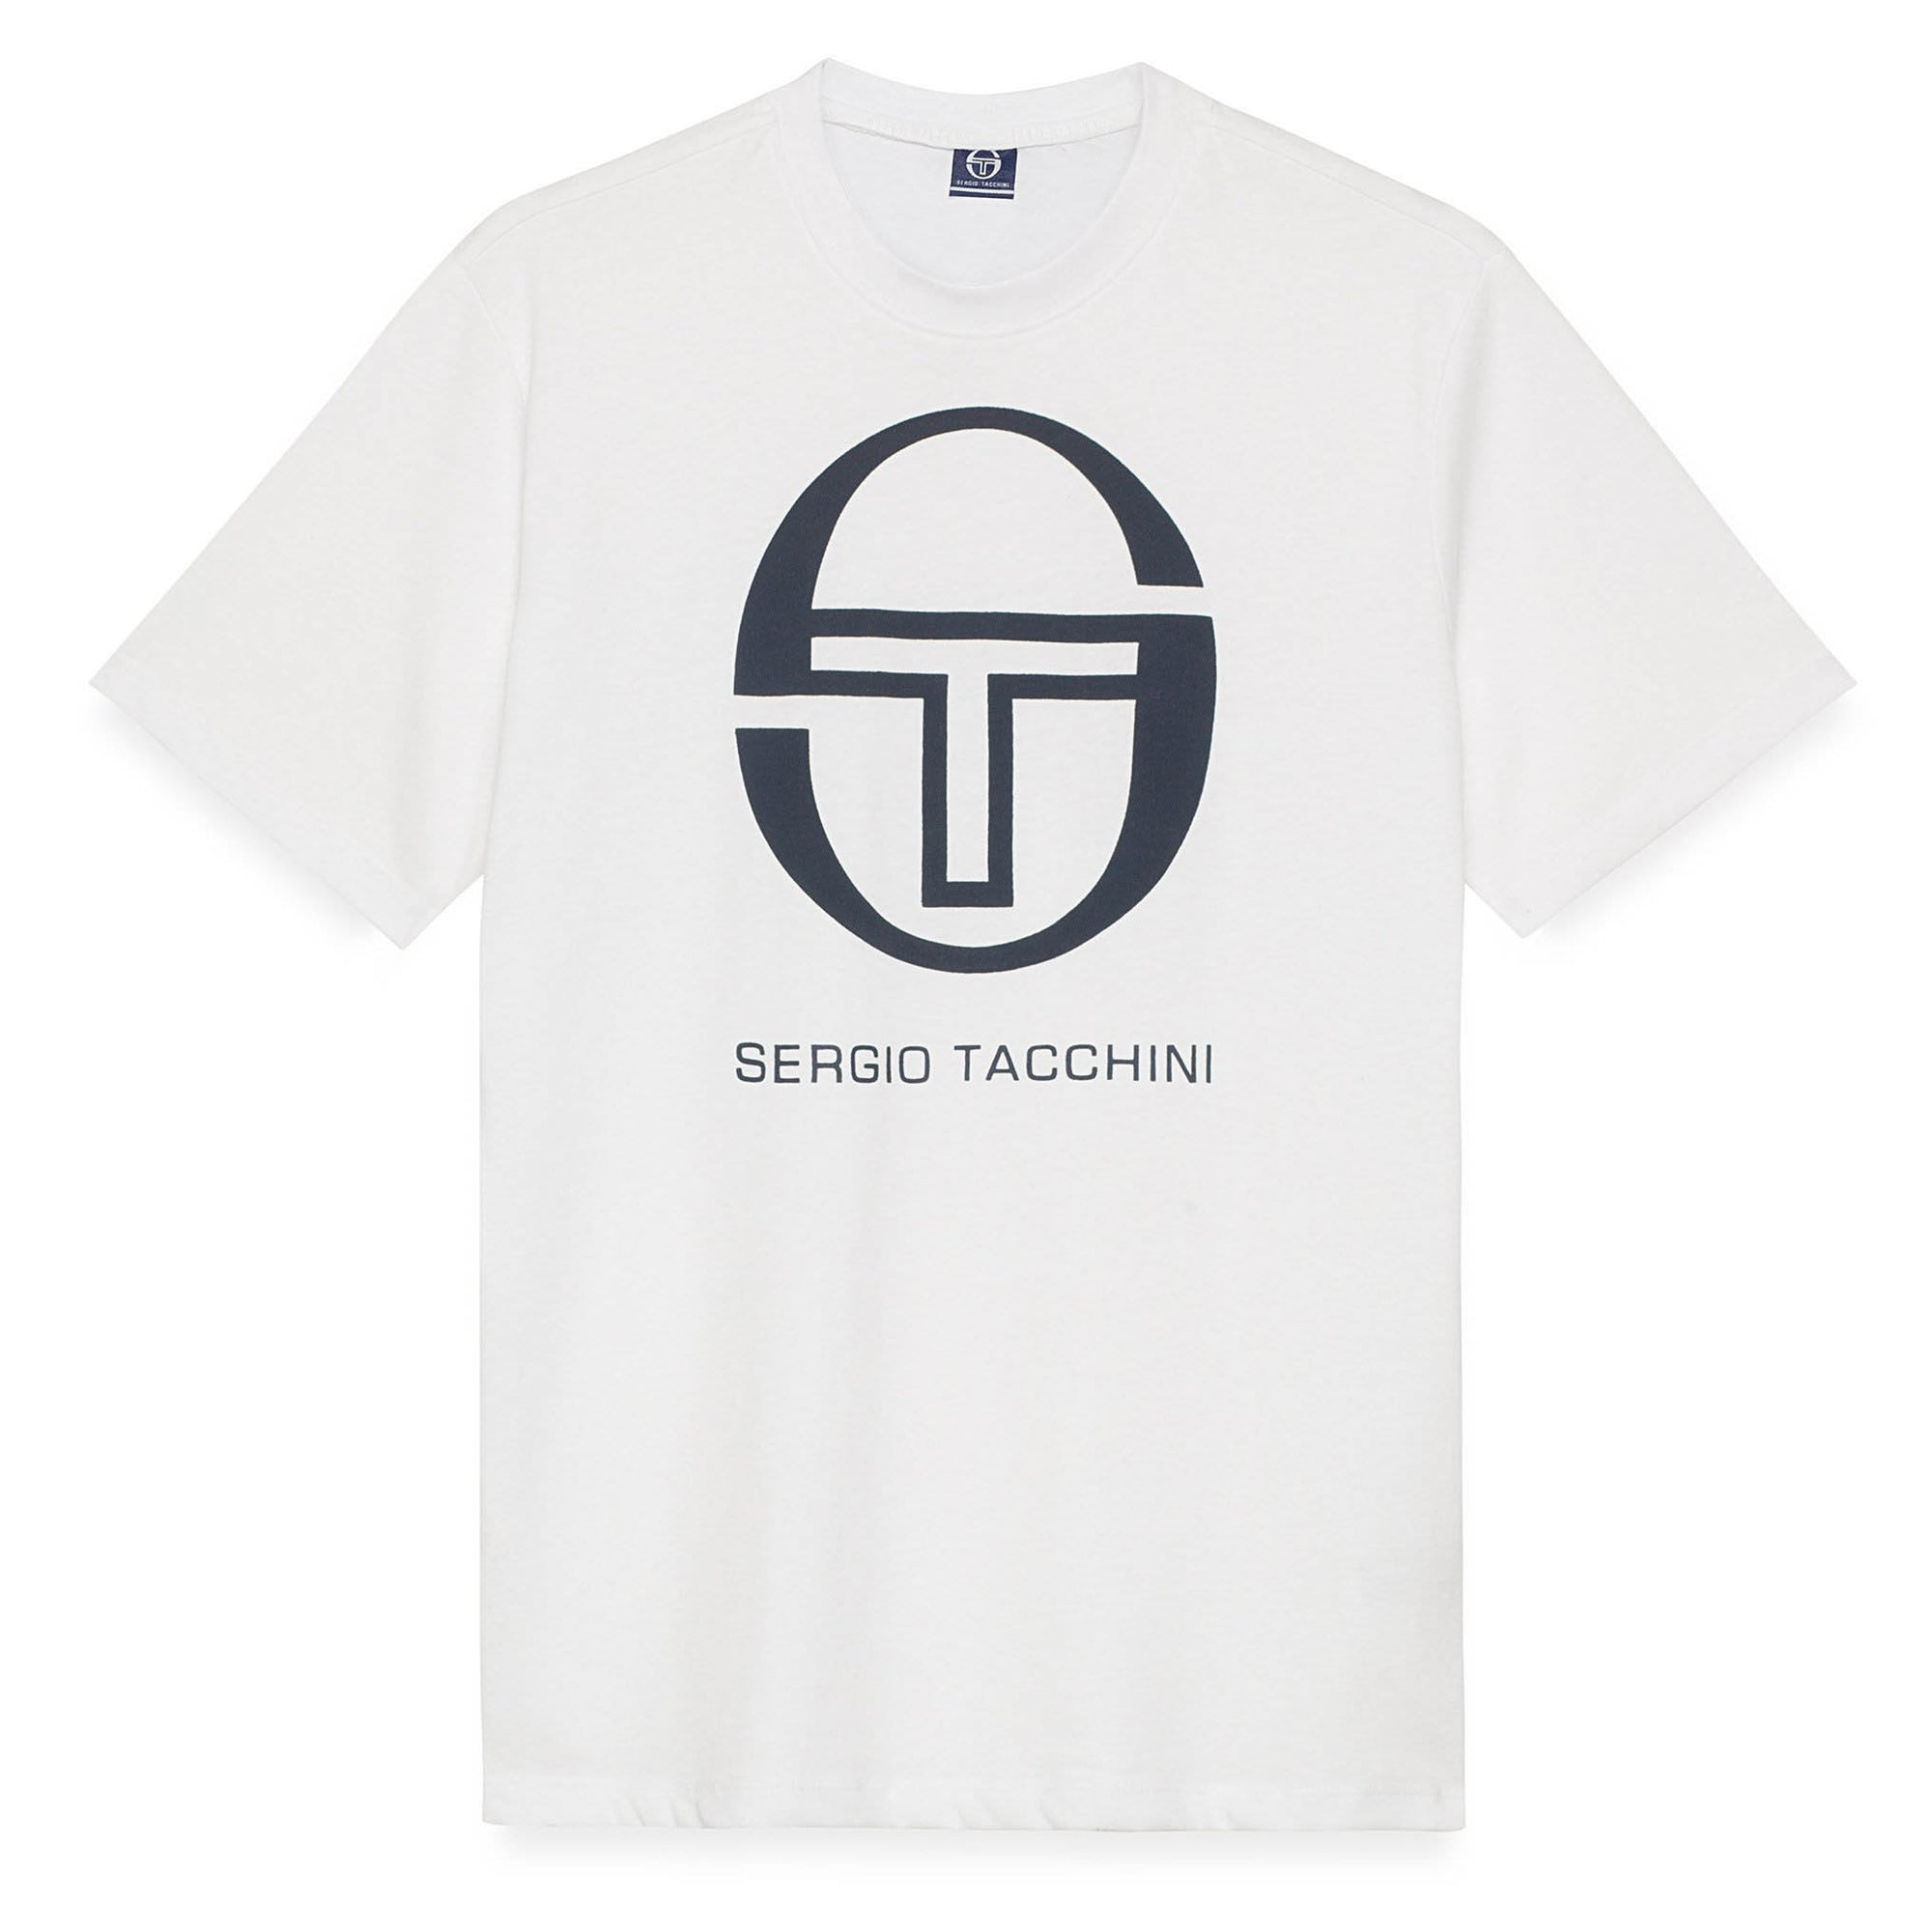 Sergio Tacchini Iberis T-Shirt White and Navy